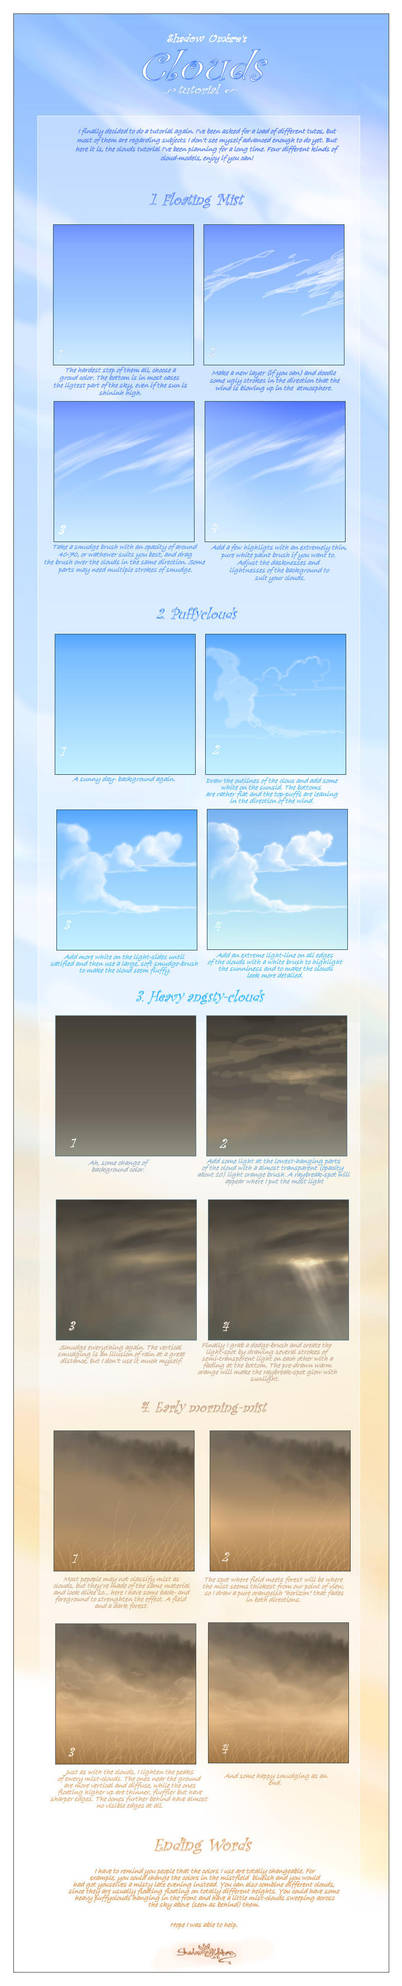 Clouds tutorial by MinnaSundberg